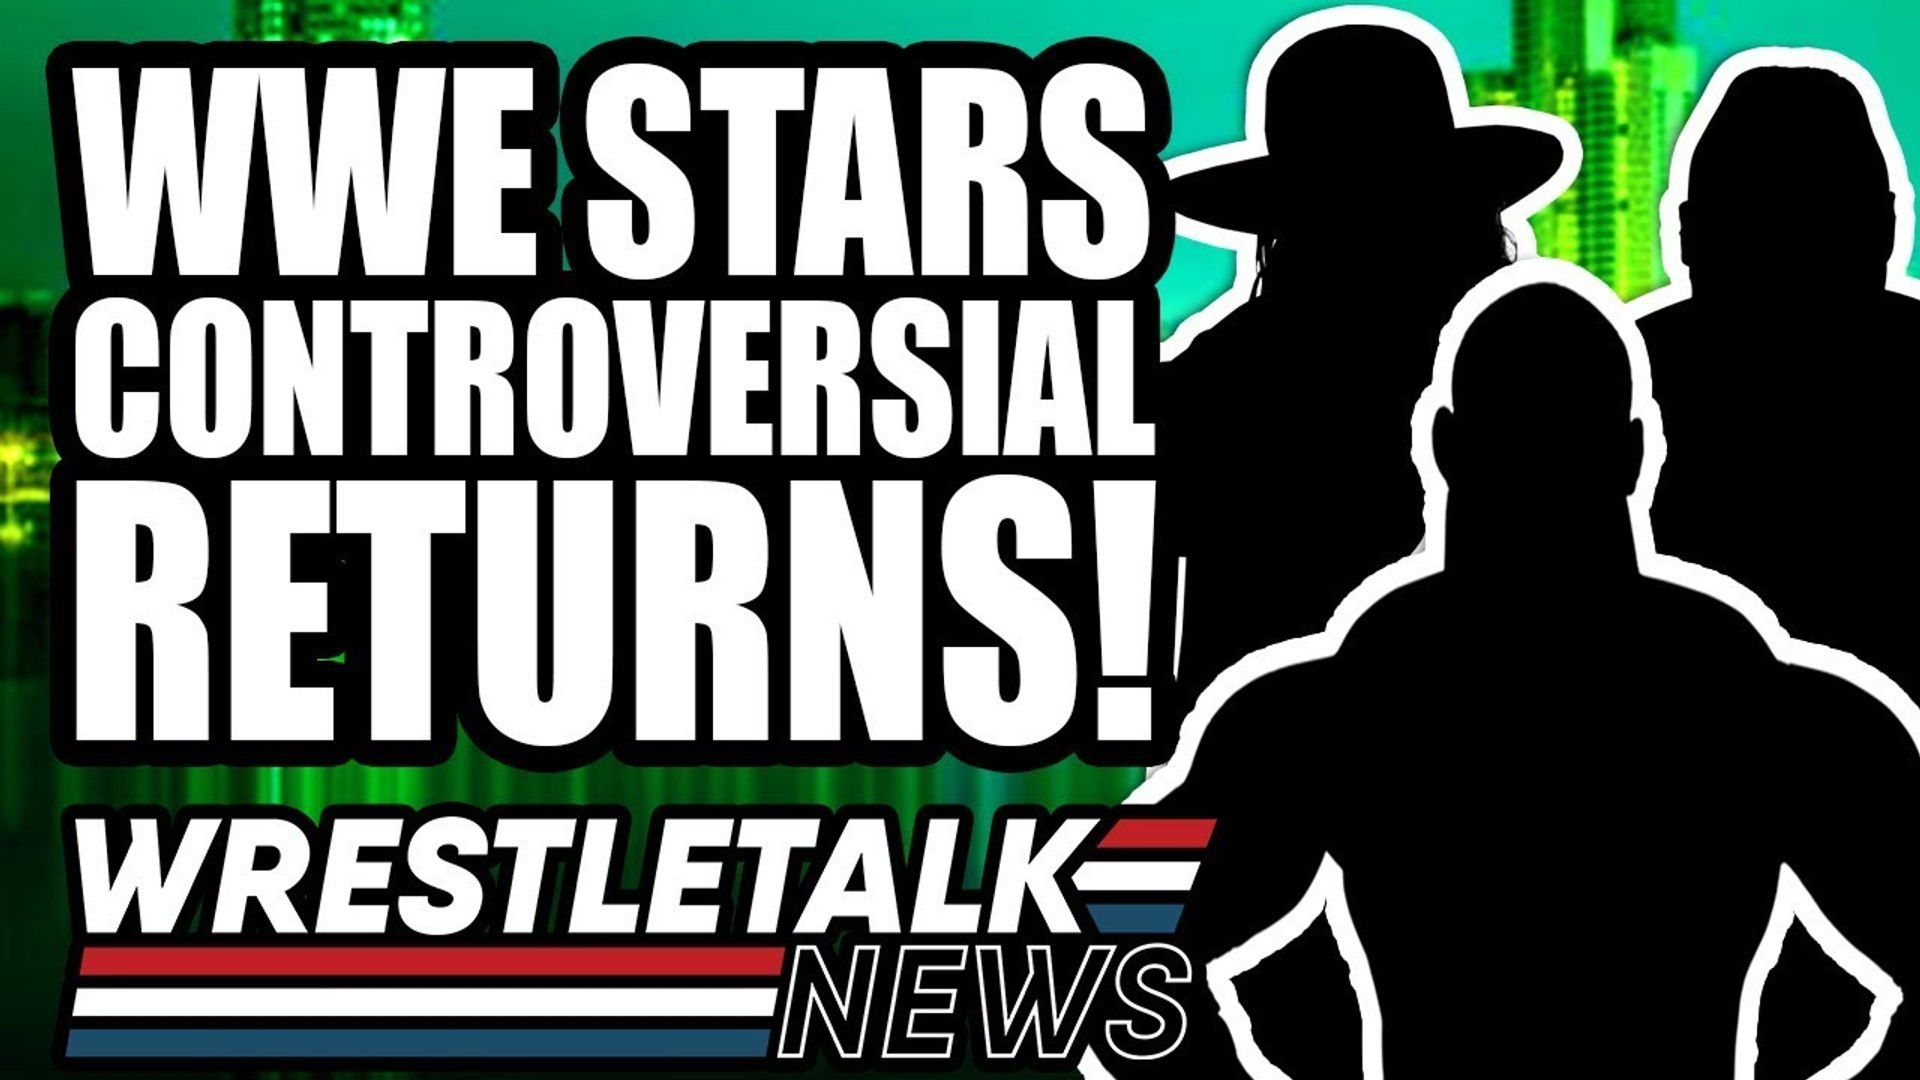 MAJOR WWE Stars CONTROVERSIAL RETURNS! Another WWE Star LEAVING! | WrestleTalk News May 2019